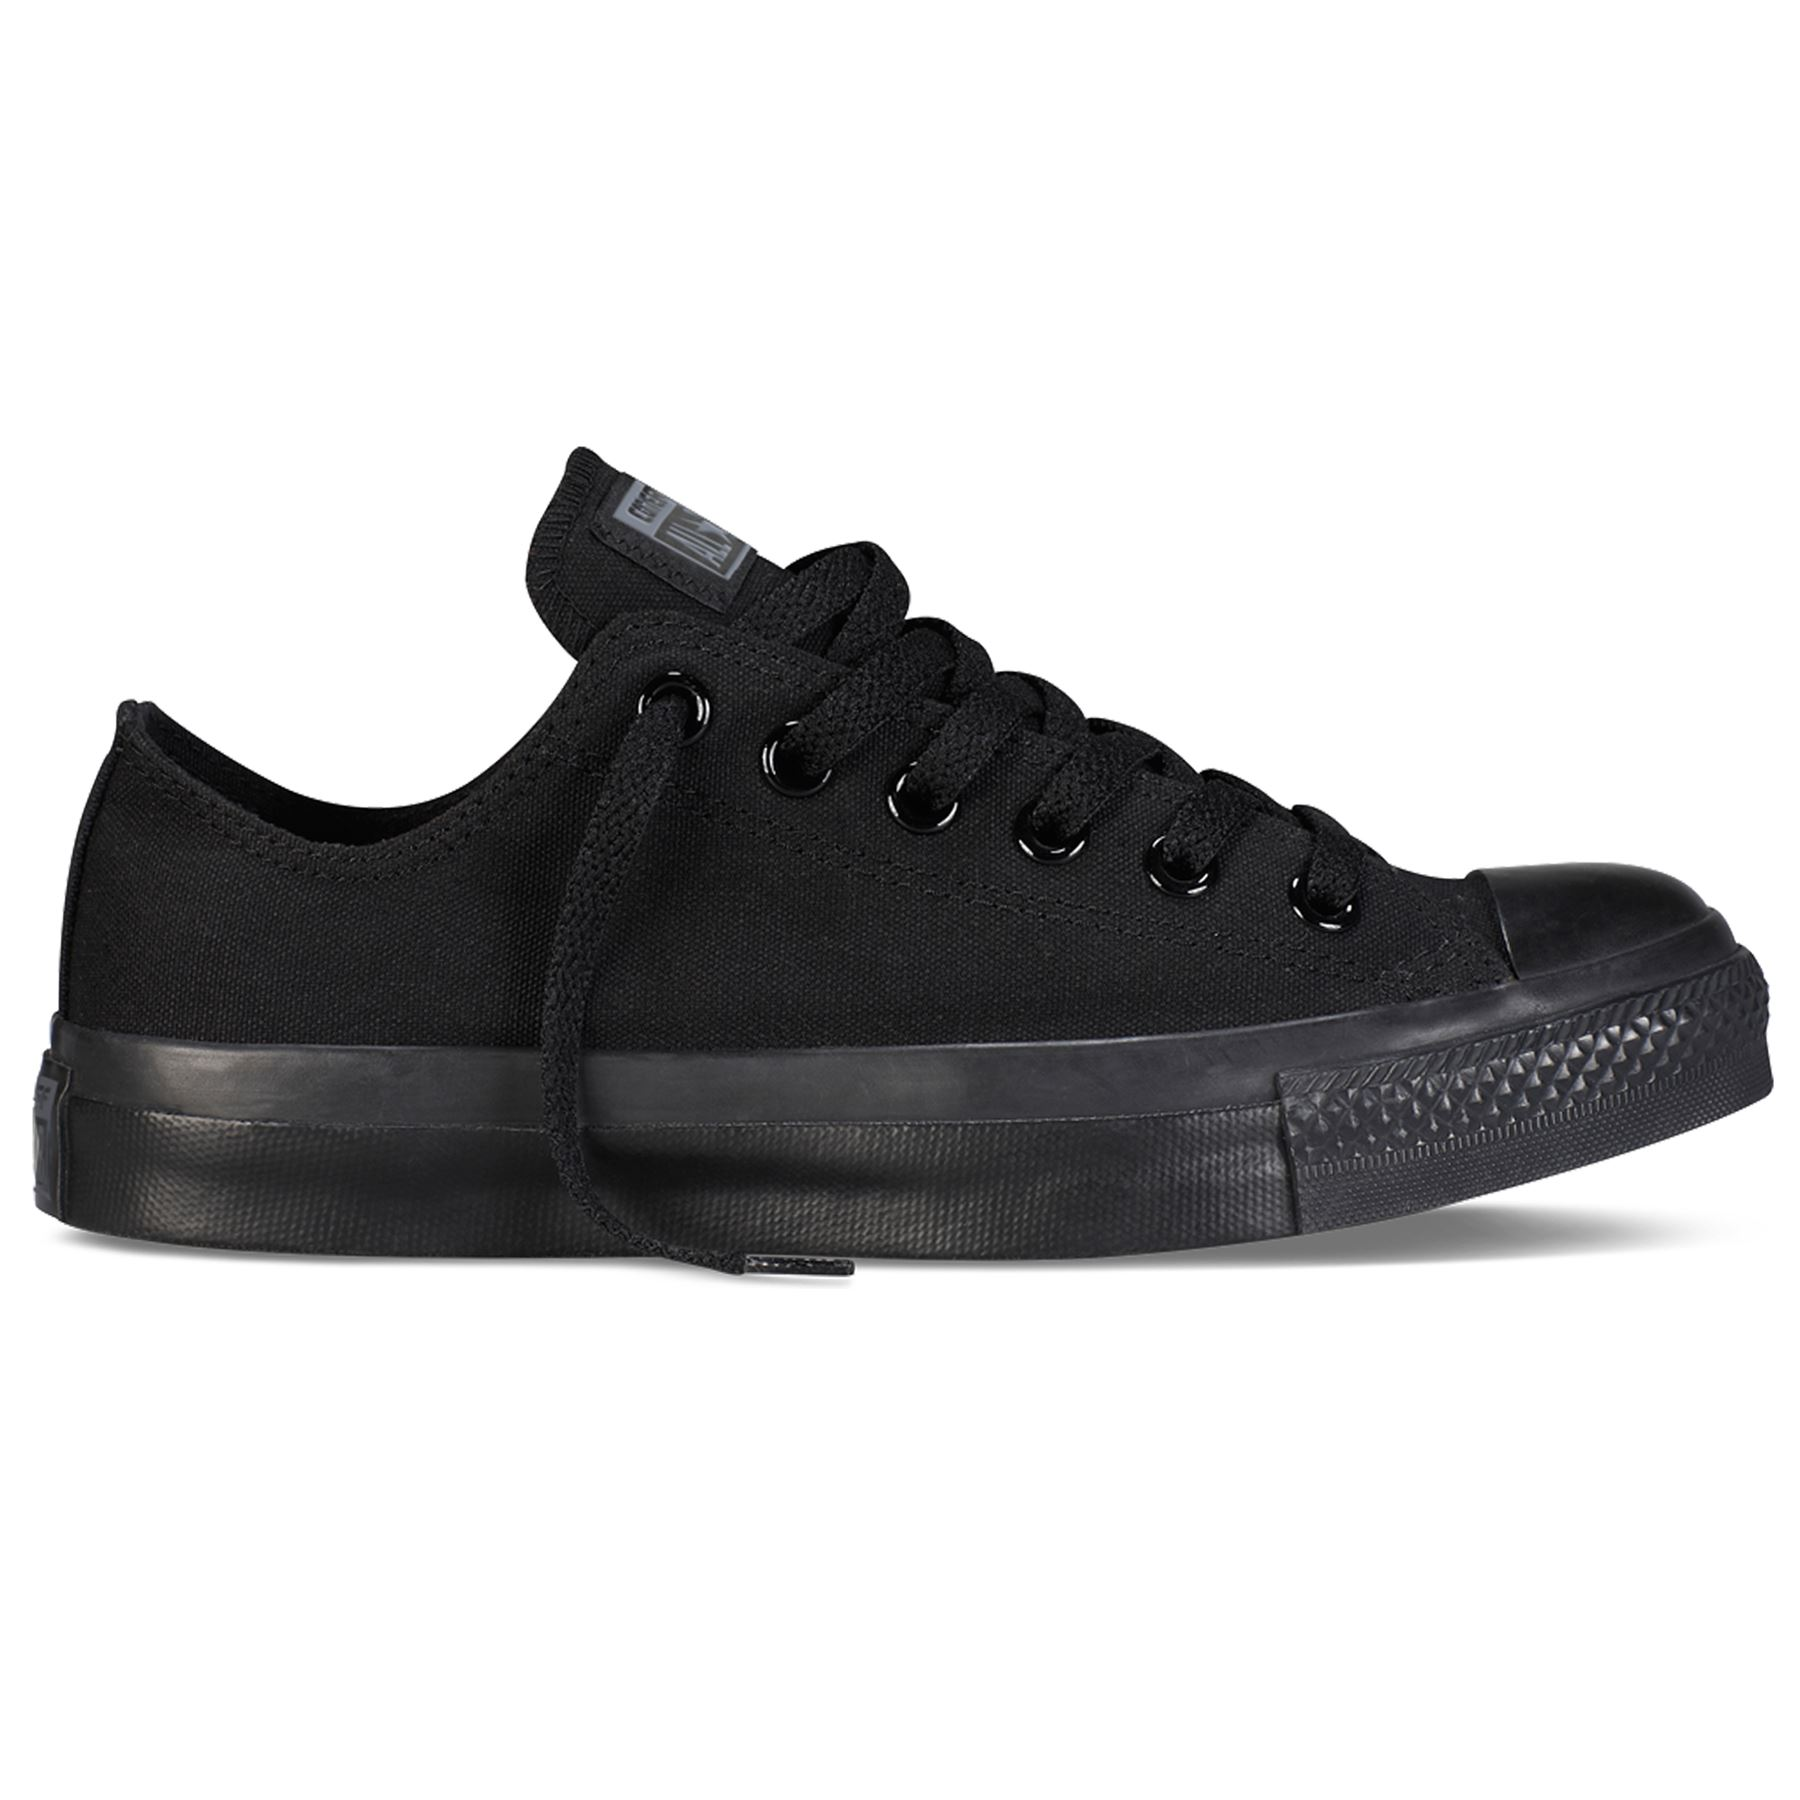 Converse-All-Star-Unisex-Chuck-Taylor-New-Mens-Womens-Low-Tops-Trainers-Pumps thumbnail 9